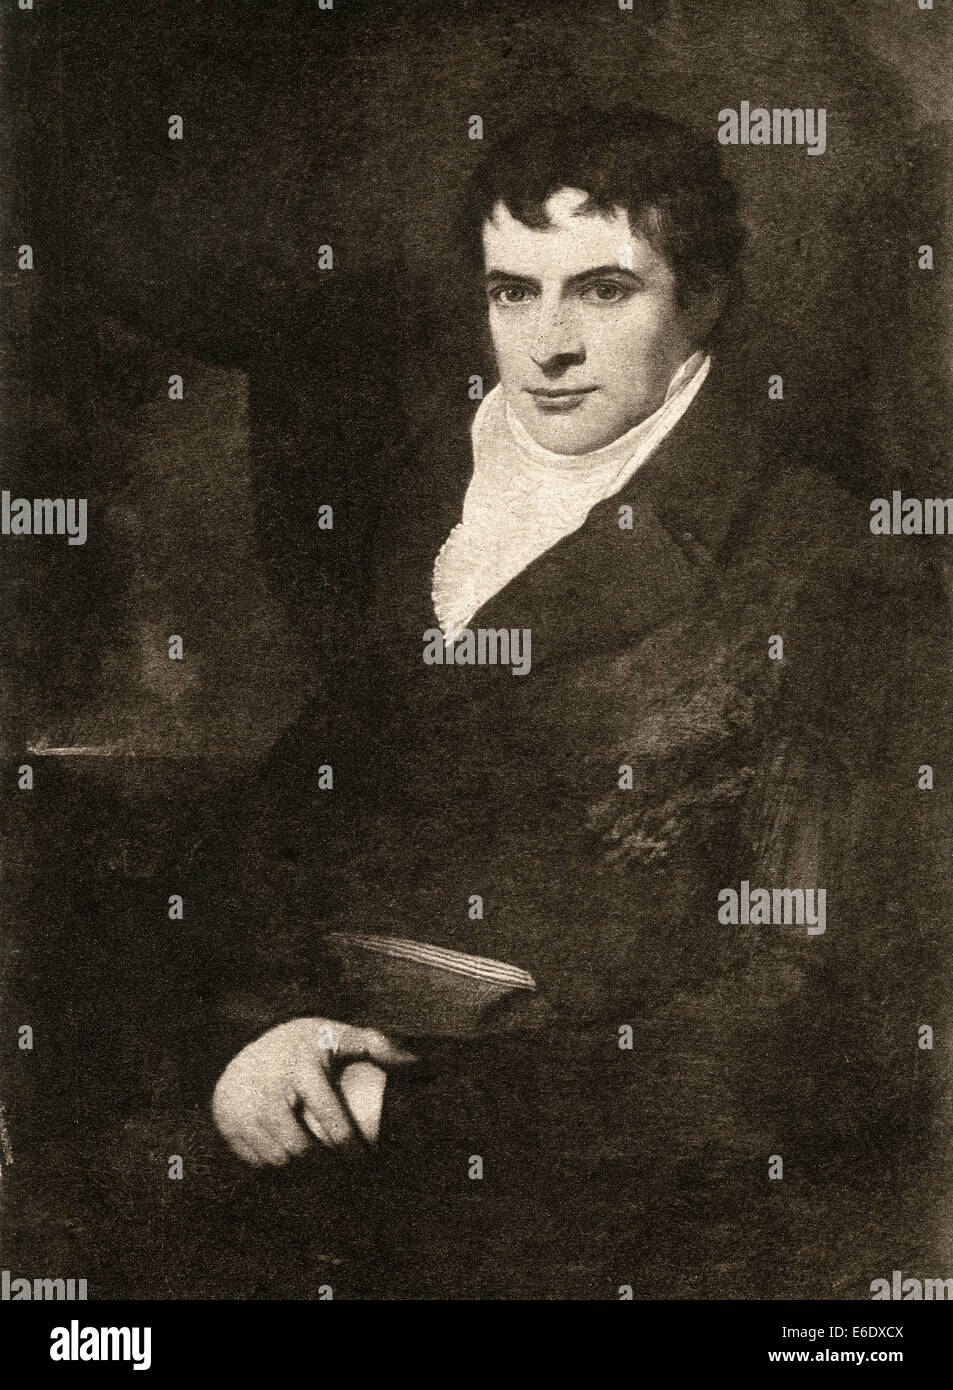 Worksheet Steamboat Inventor Robert Fulton robert fulton 1765 1815 british american engineer and inventor who is widely credited with the development of steamboat